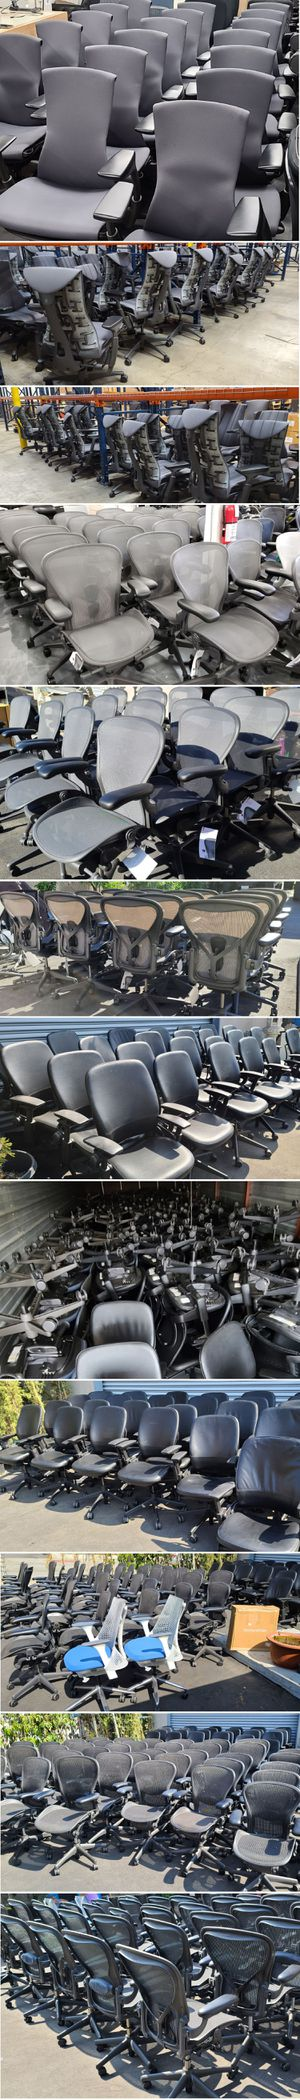 WE HAVE IN STOCK ALL THE BEST CHAIRS FROM ALL THE BEST BRANDS HERMAN MILLER STEELCASE EAMES KNOLL HAWORTH HUMANSCALE BIGGEST INVENTORY IN SO CAL for Sale in Alhambra, CA